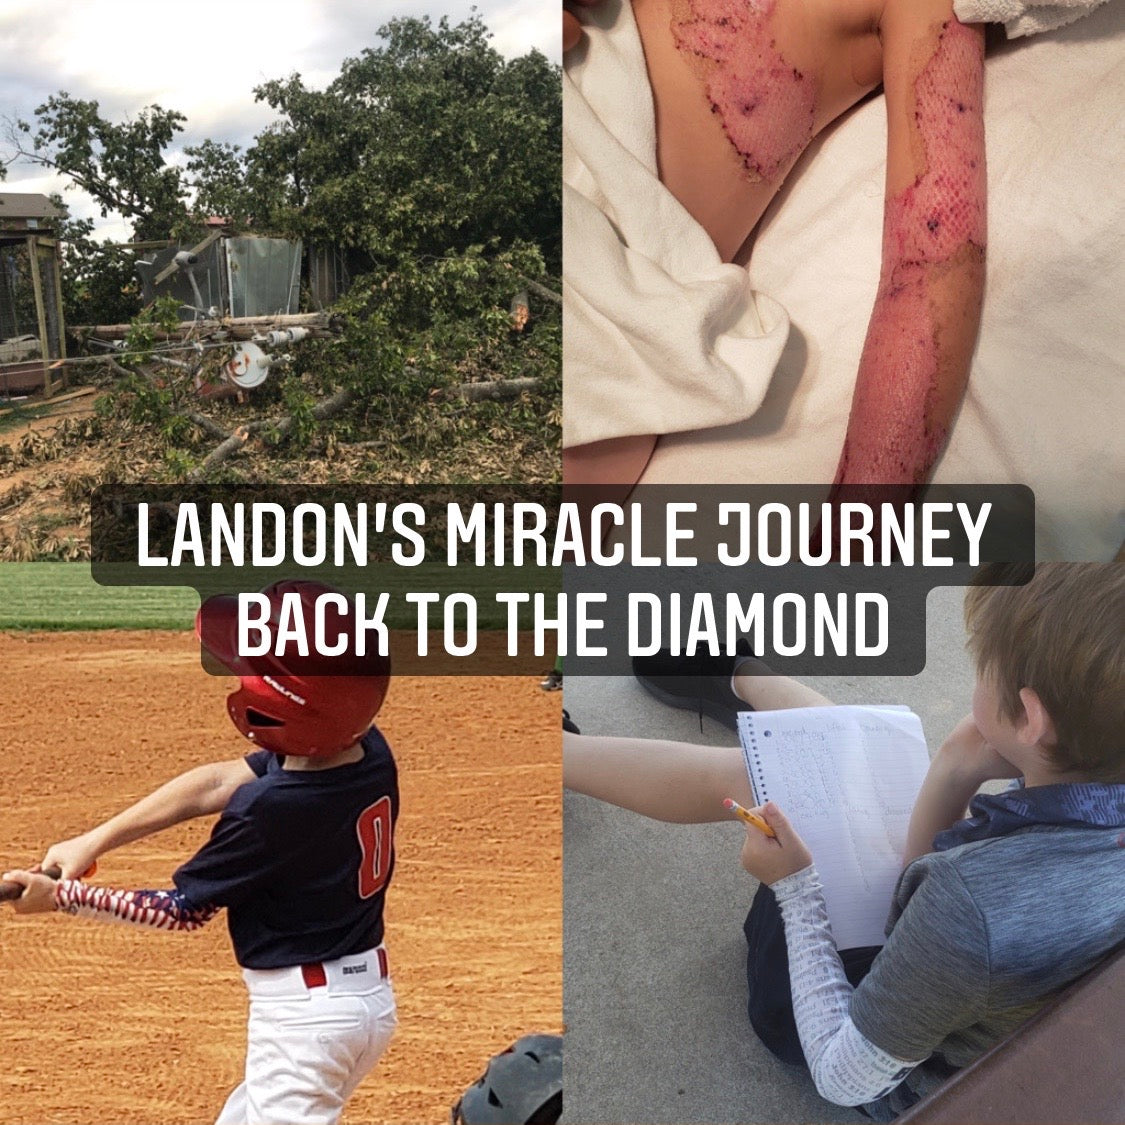 Landon's Miracle Journey Back to the Diamond